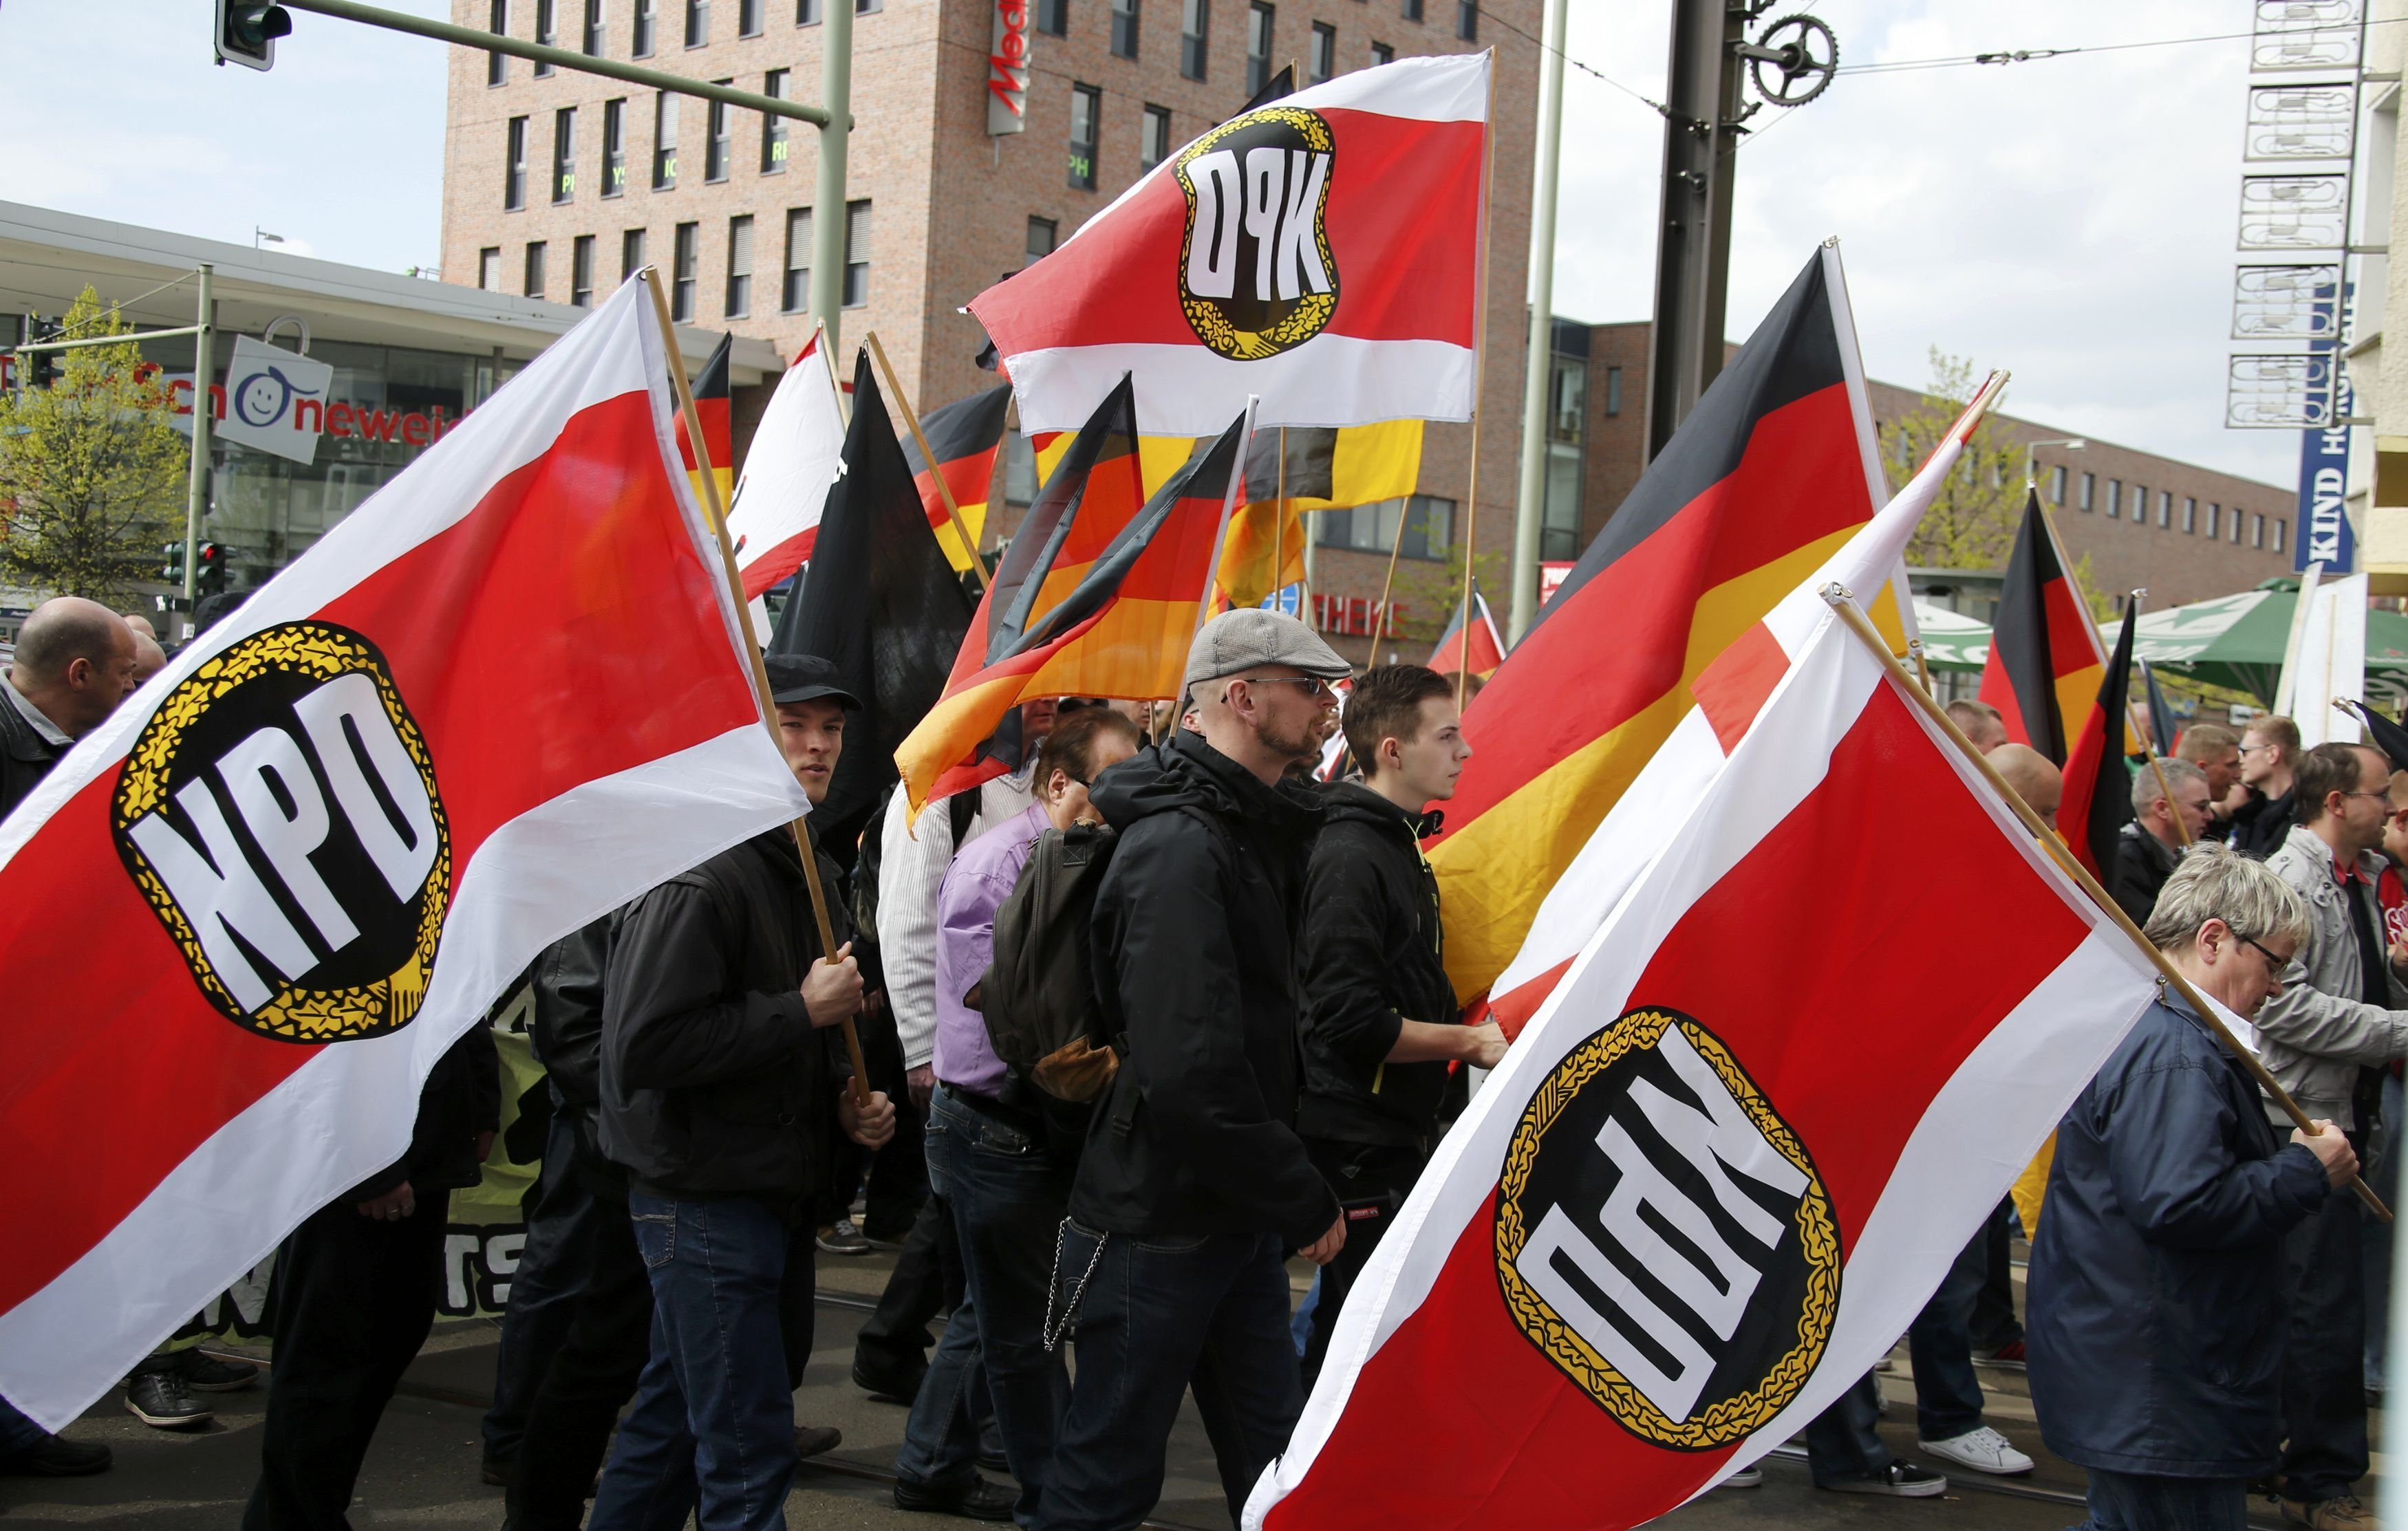 Supporters and members of the far-right National Democratic Party (NPD) (File)